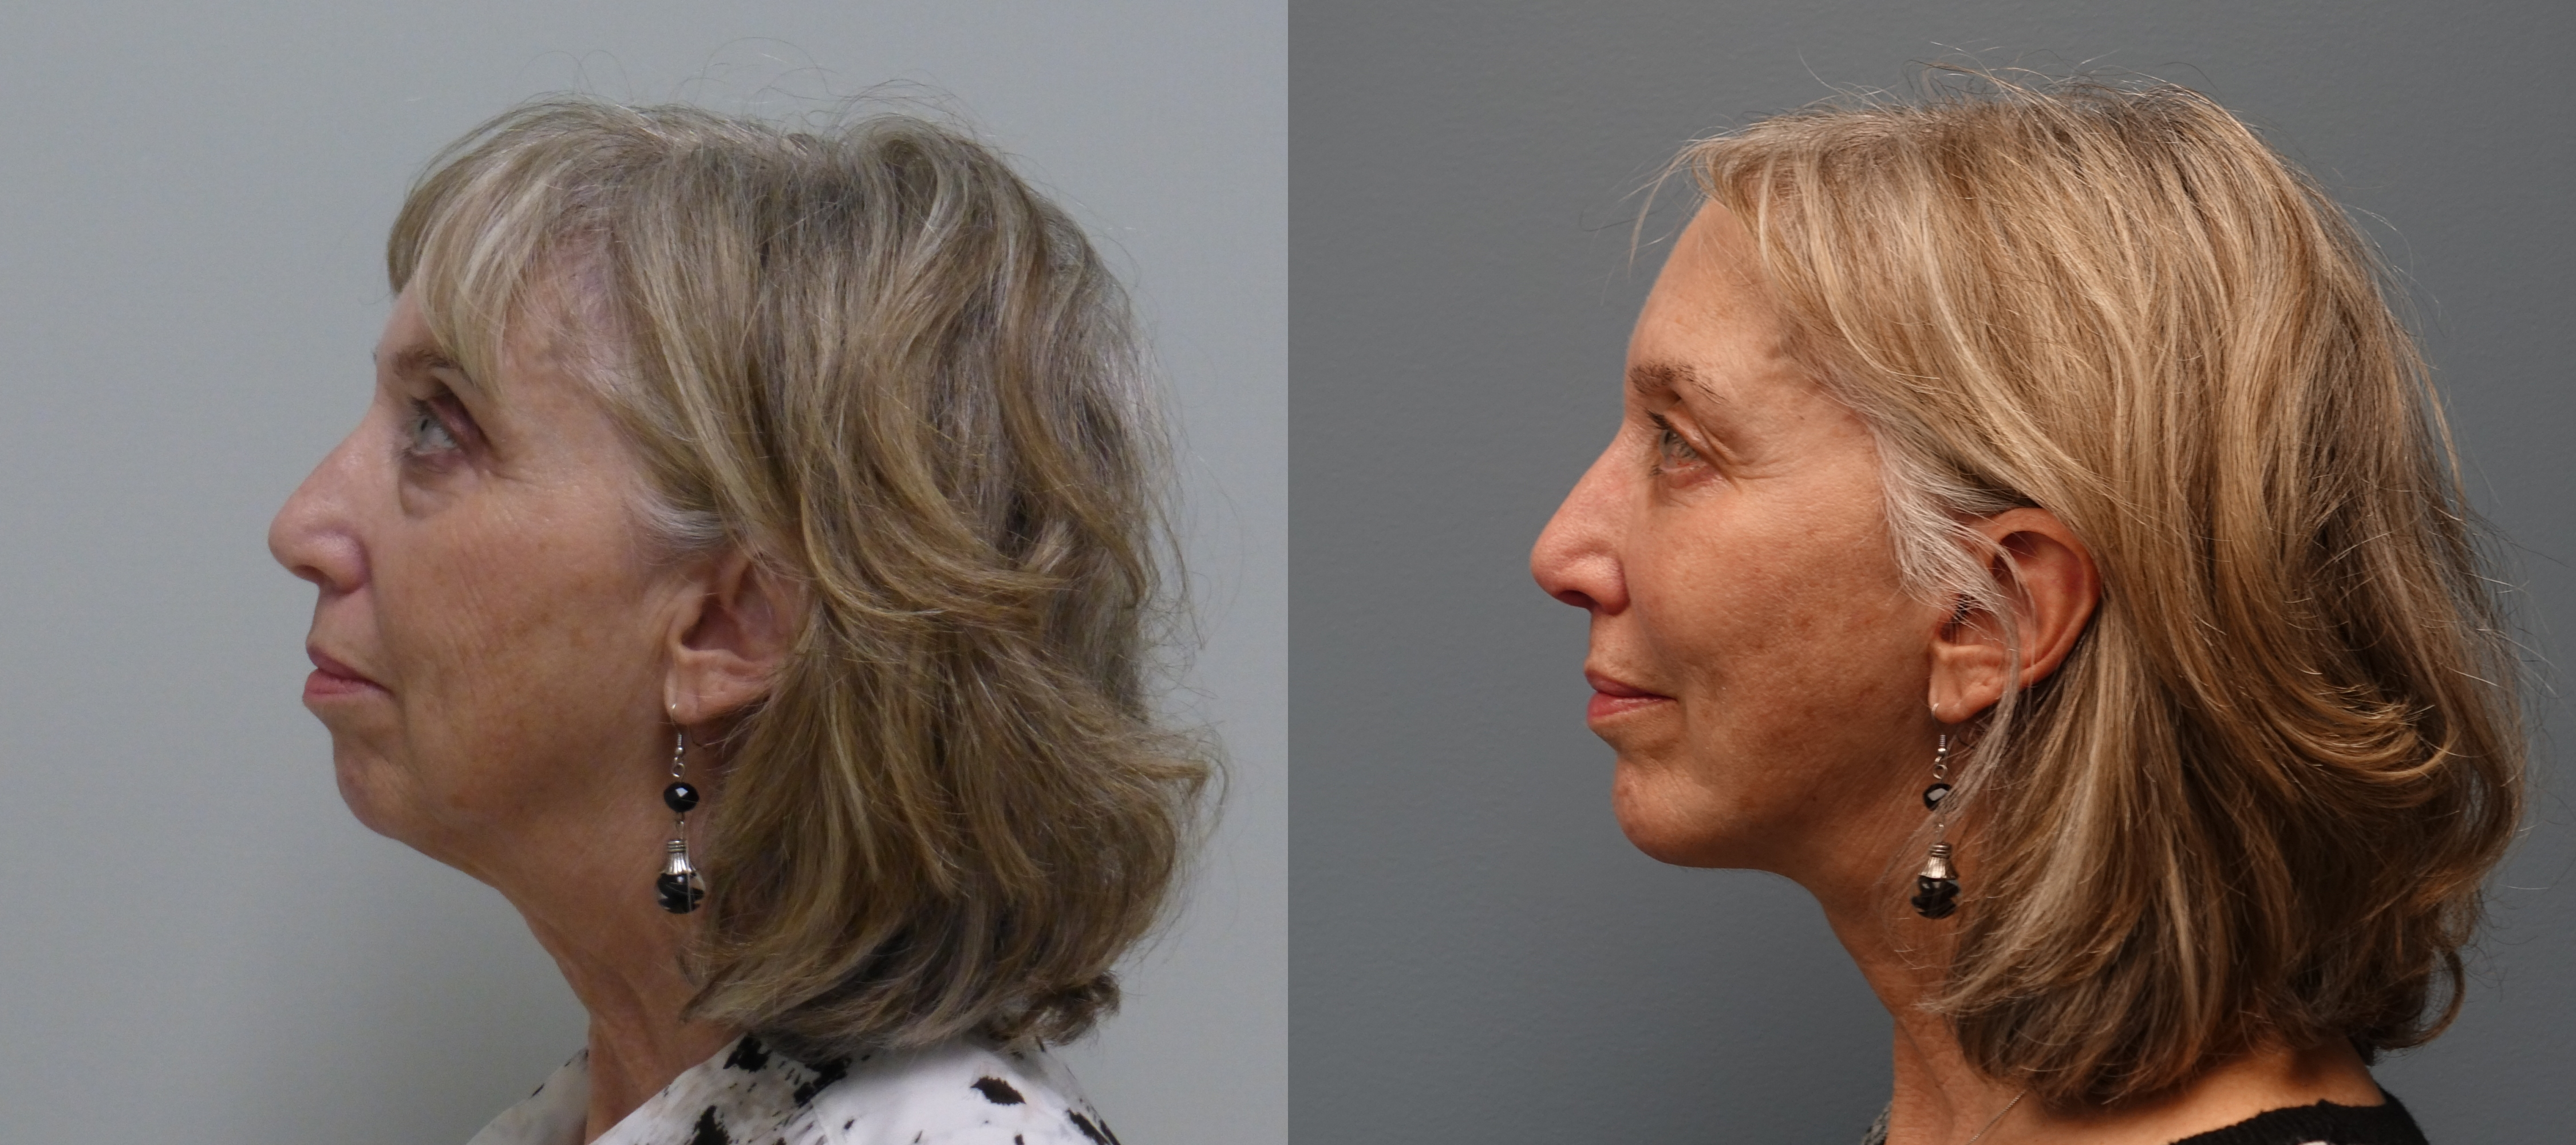 5 year old Before and 6 month After modified facelift, implant to chin and anterior cheek, lower lid blepharoplasty, and fat grafts to the face.